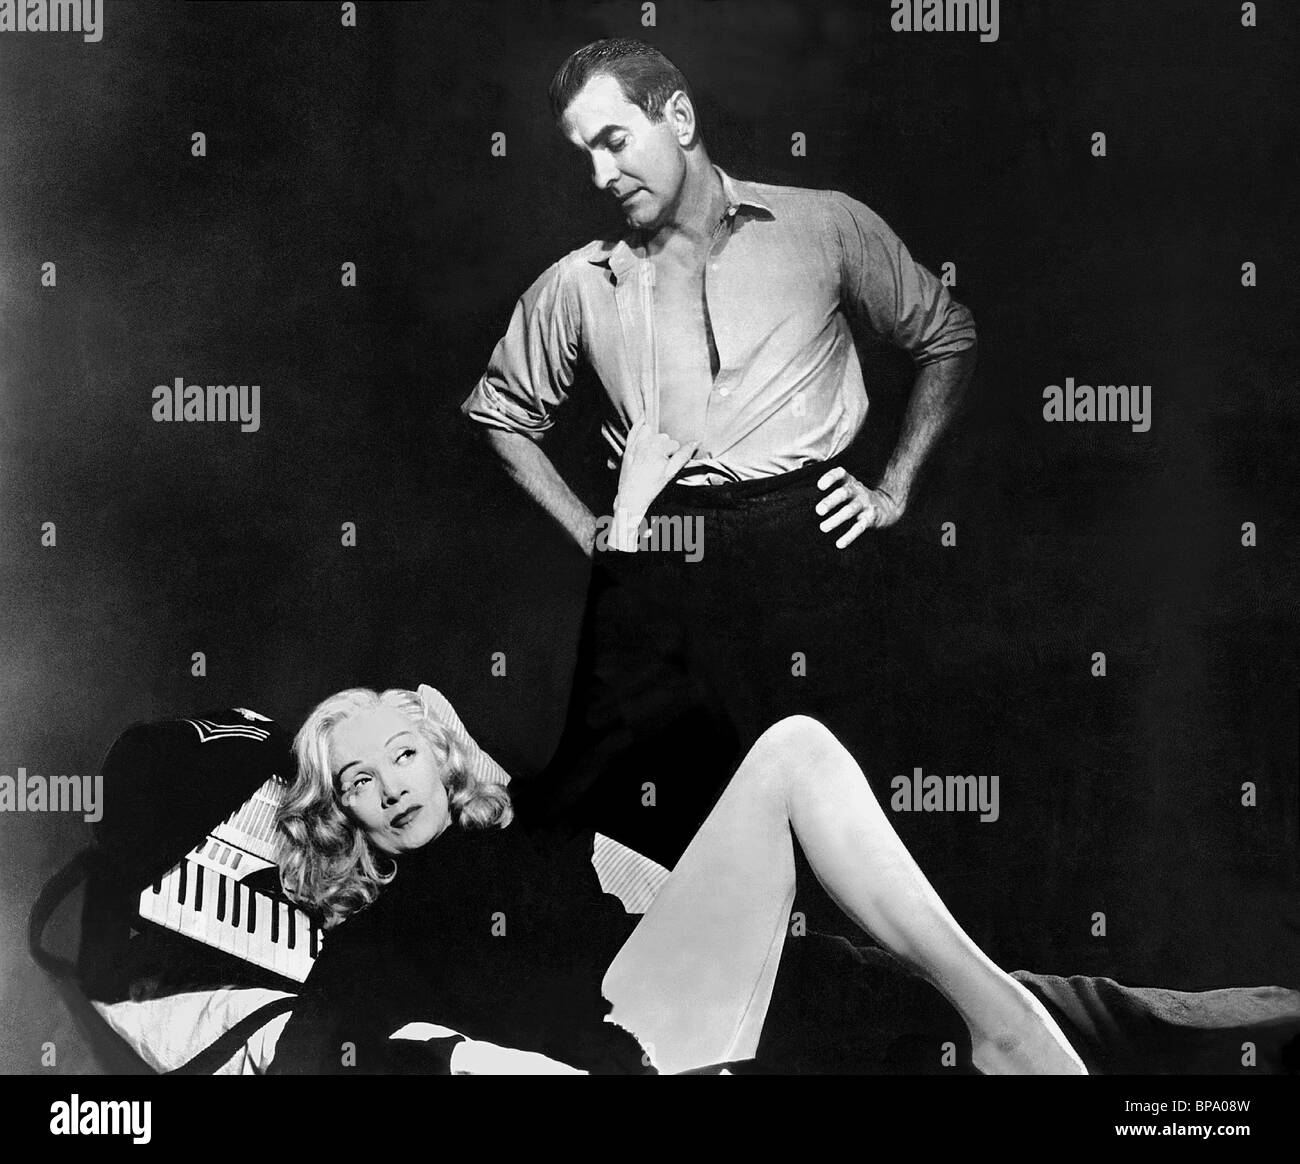 http://c8.alamy.com/comp/BPA08W/marlene-dietrich-tyrone-power-witness-for-the-prosecution-1957-BPA08W.jpg